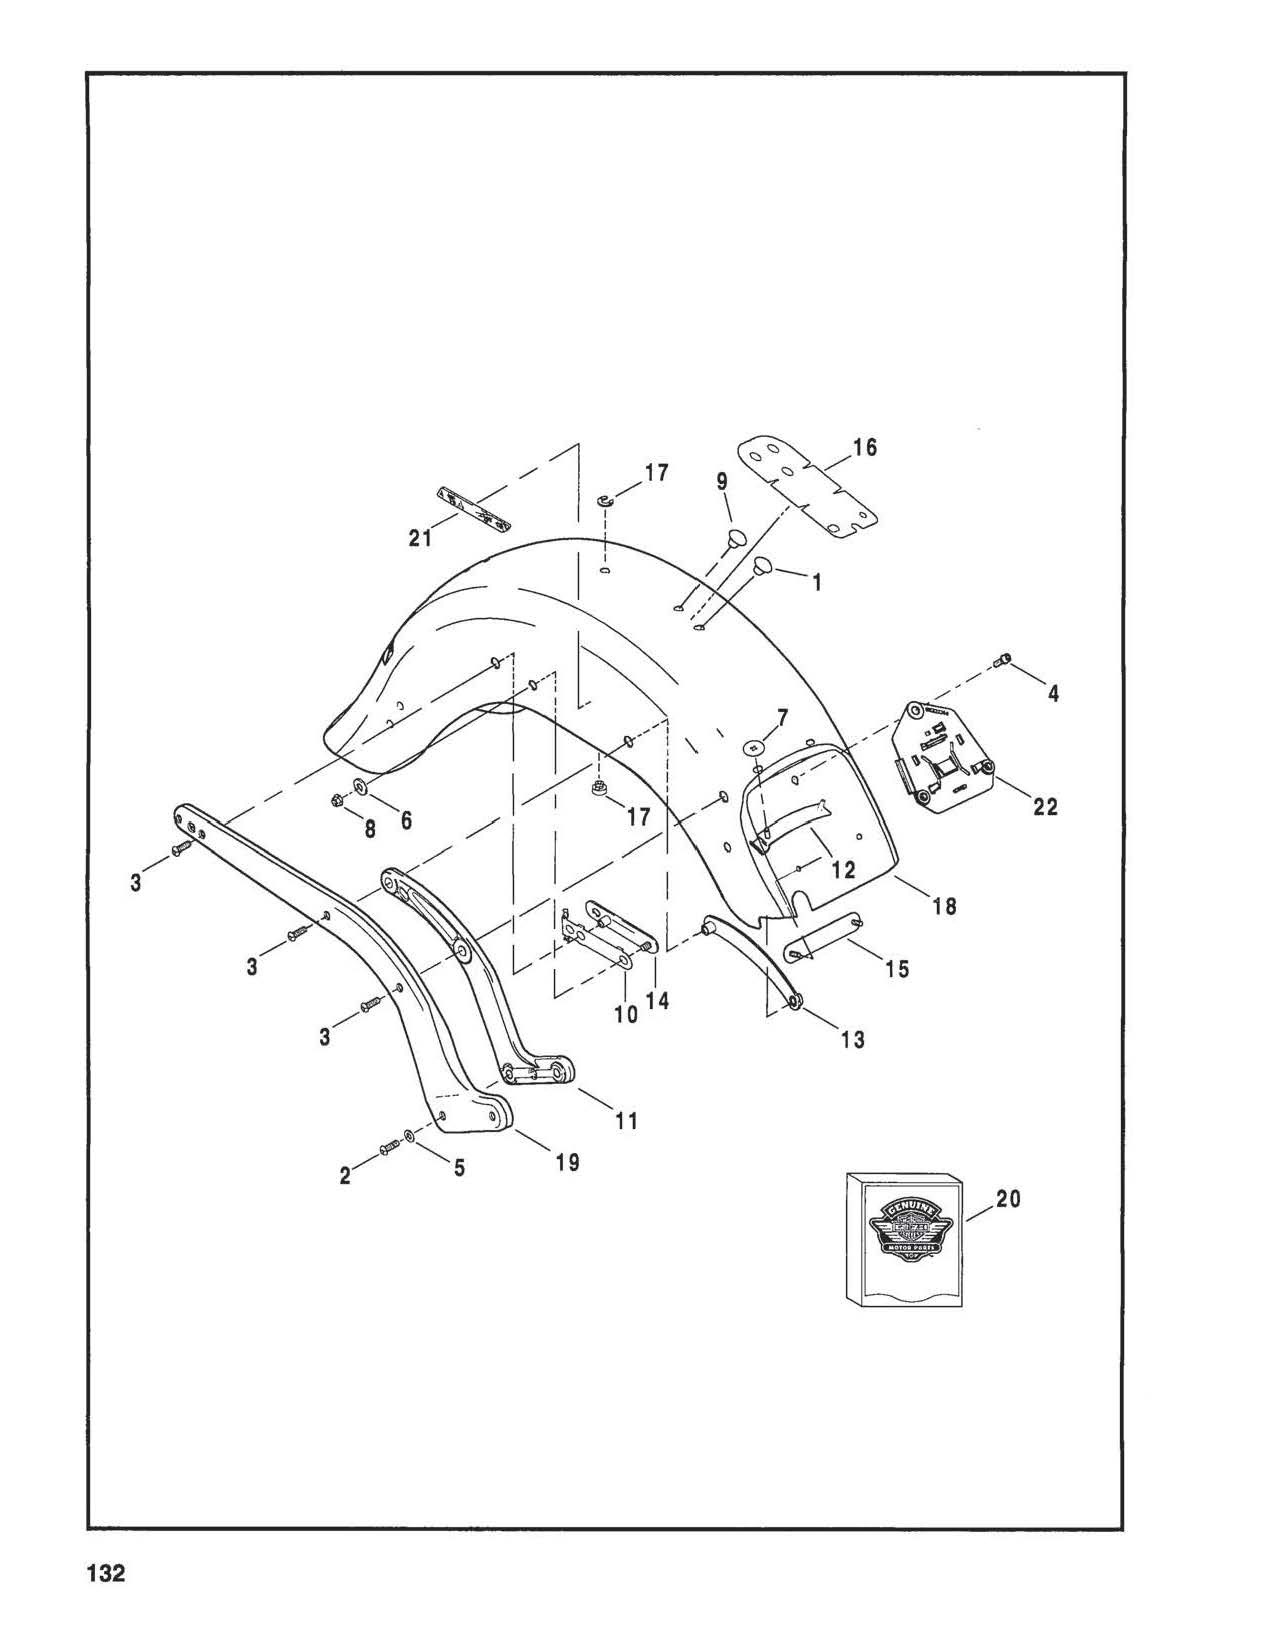 801761 Rear Brake Pad Change On 2003 Deuce 2 together with Harley Cv Carburetor Parts Diagram moreover 620sh 1966 1969 Harley Fhl Wiring Diagram as well 97 Harley Sportster Engine Diagram further 976482 Thread Question Springer. on harley davidson softail deuce